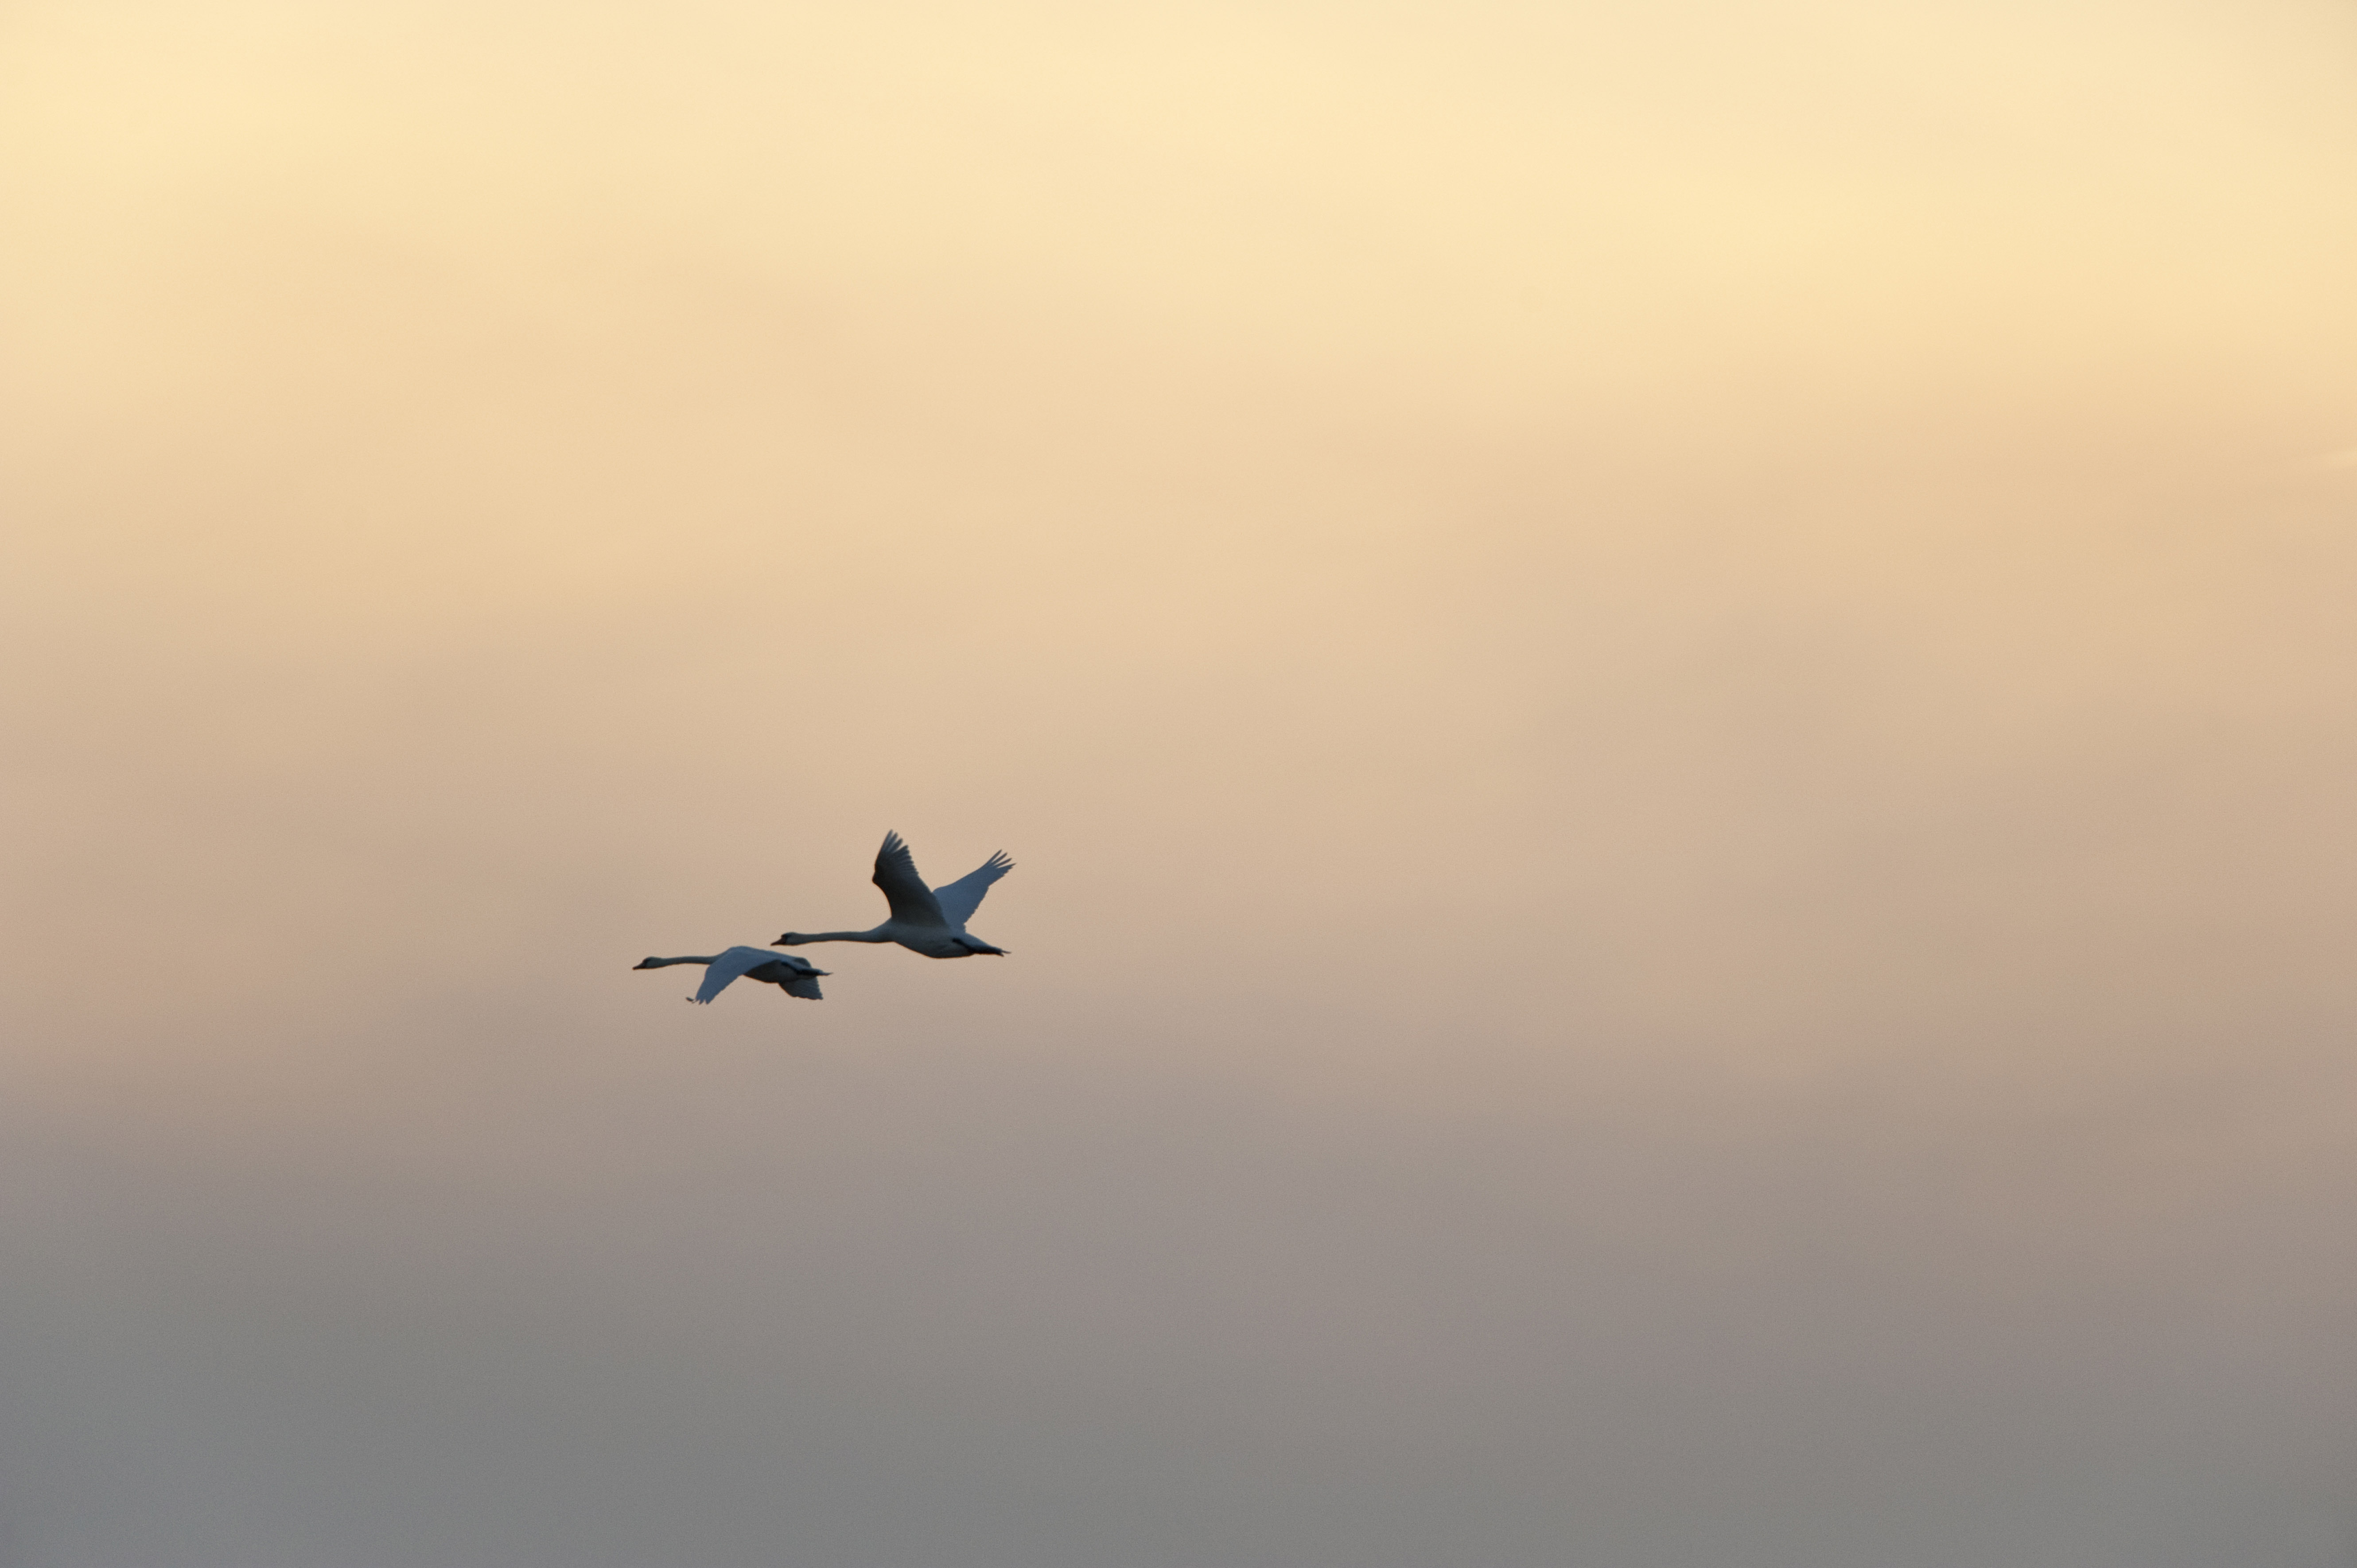 White swans (Cygnus olor) in sunset ©Johannes Ratermann